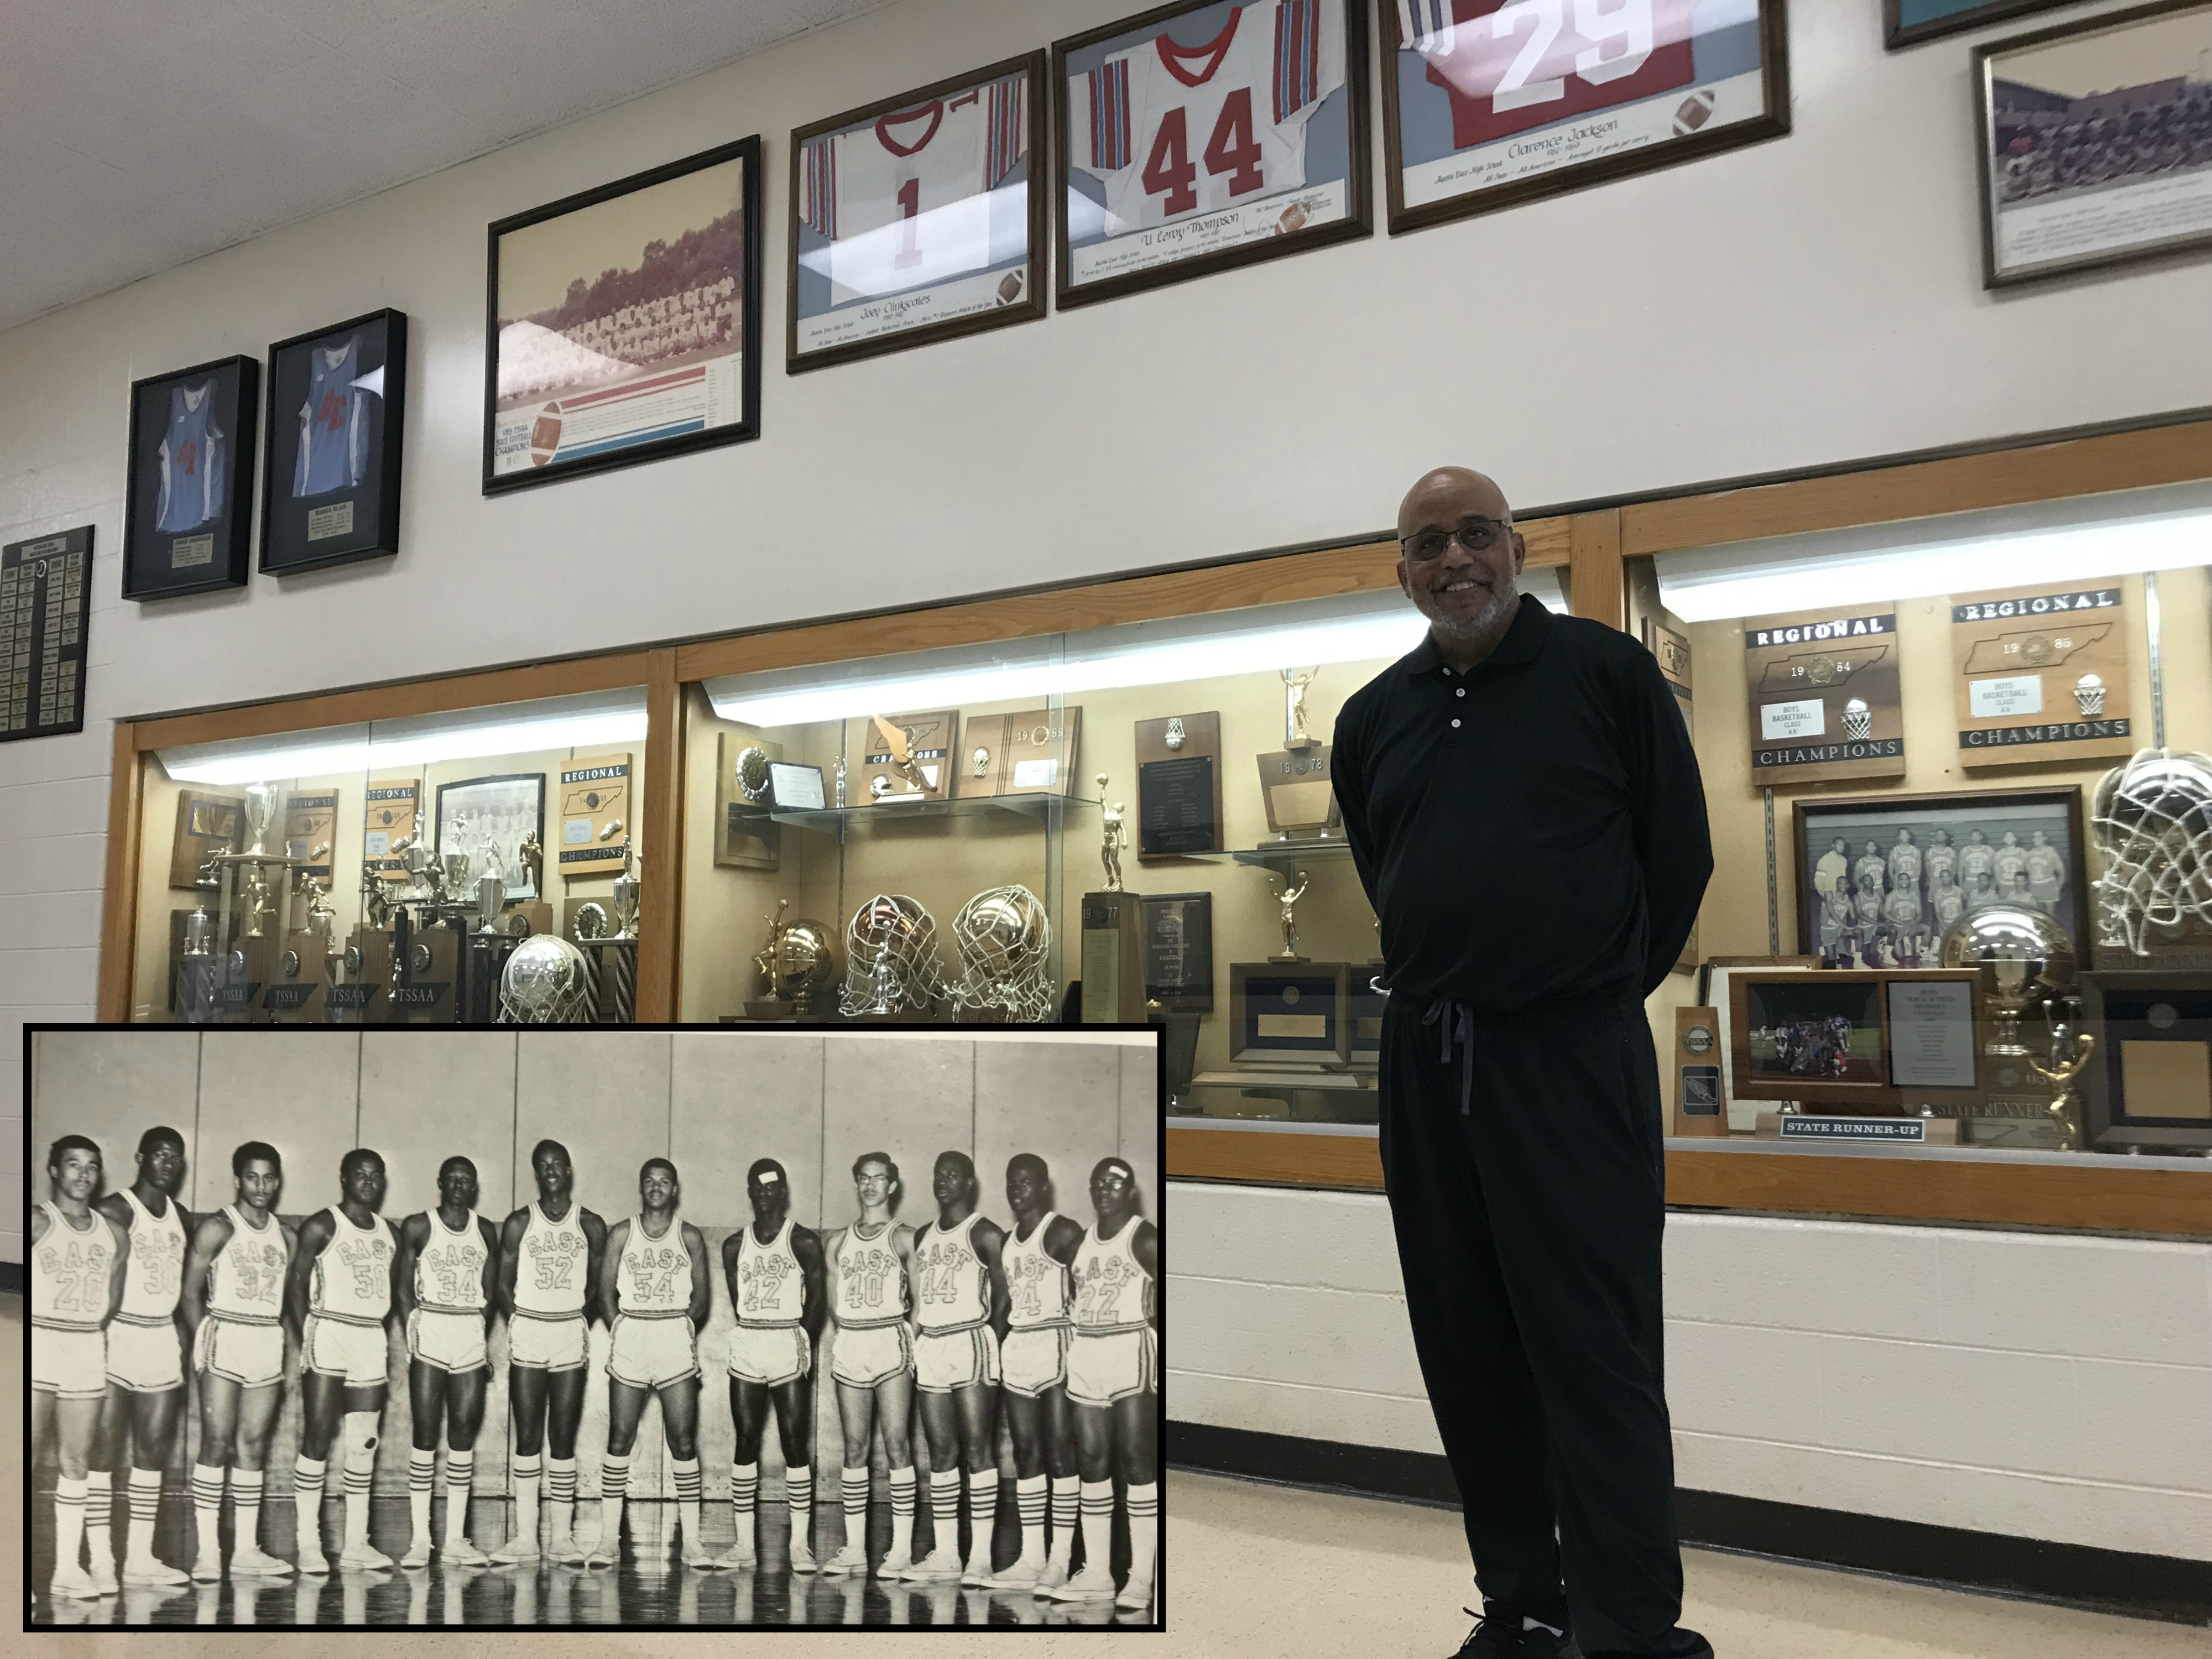 Brian Harvey stands in front of the trophy case at Austin-East High School, his alma mater, on Sep. 17, 2018. At upper left is a yearbook photo, with Harvey third from the left, wearing #32.